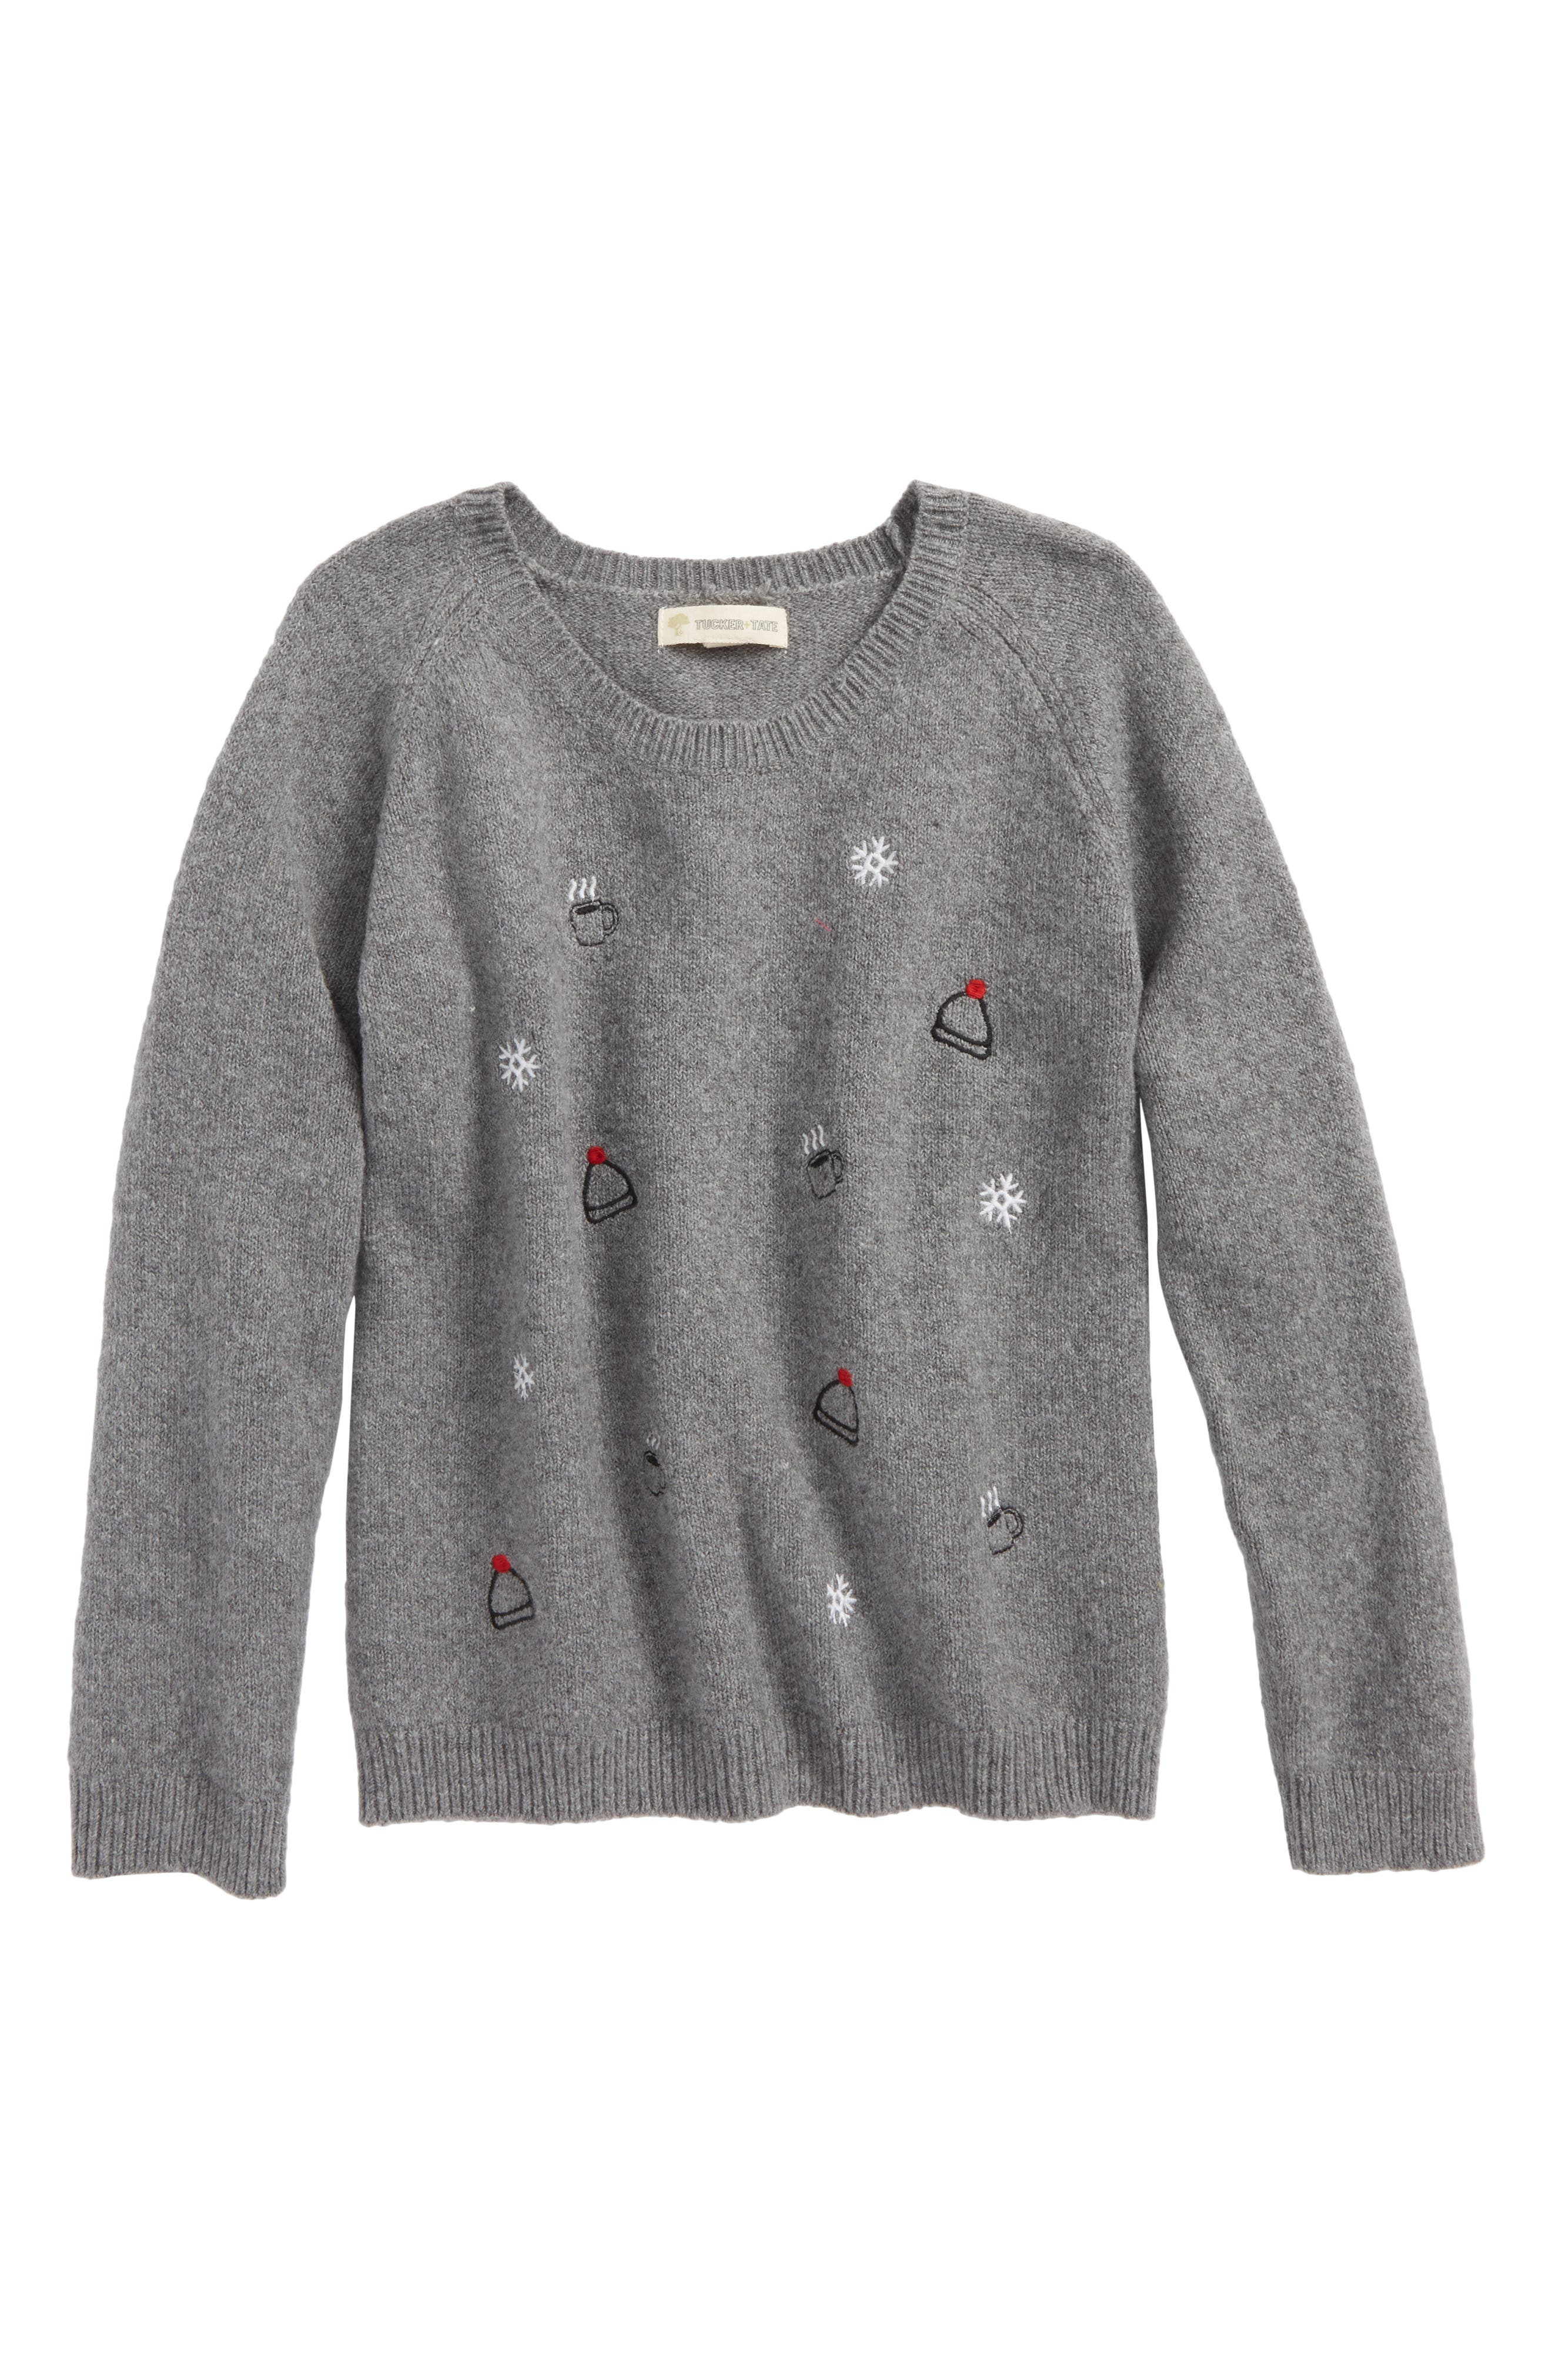 Embroidered Sweater,                         Main,                         color, Grey Medium Heather Icons